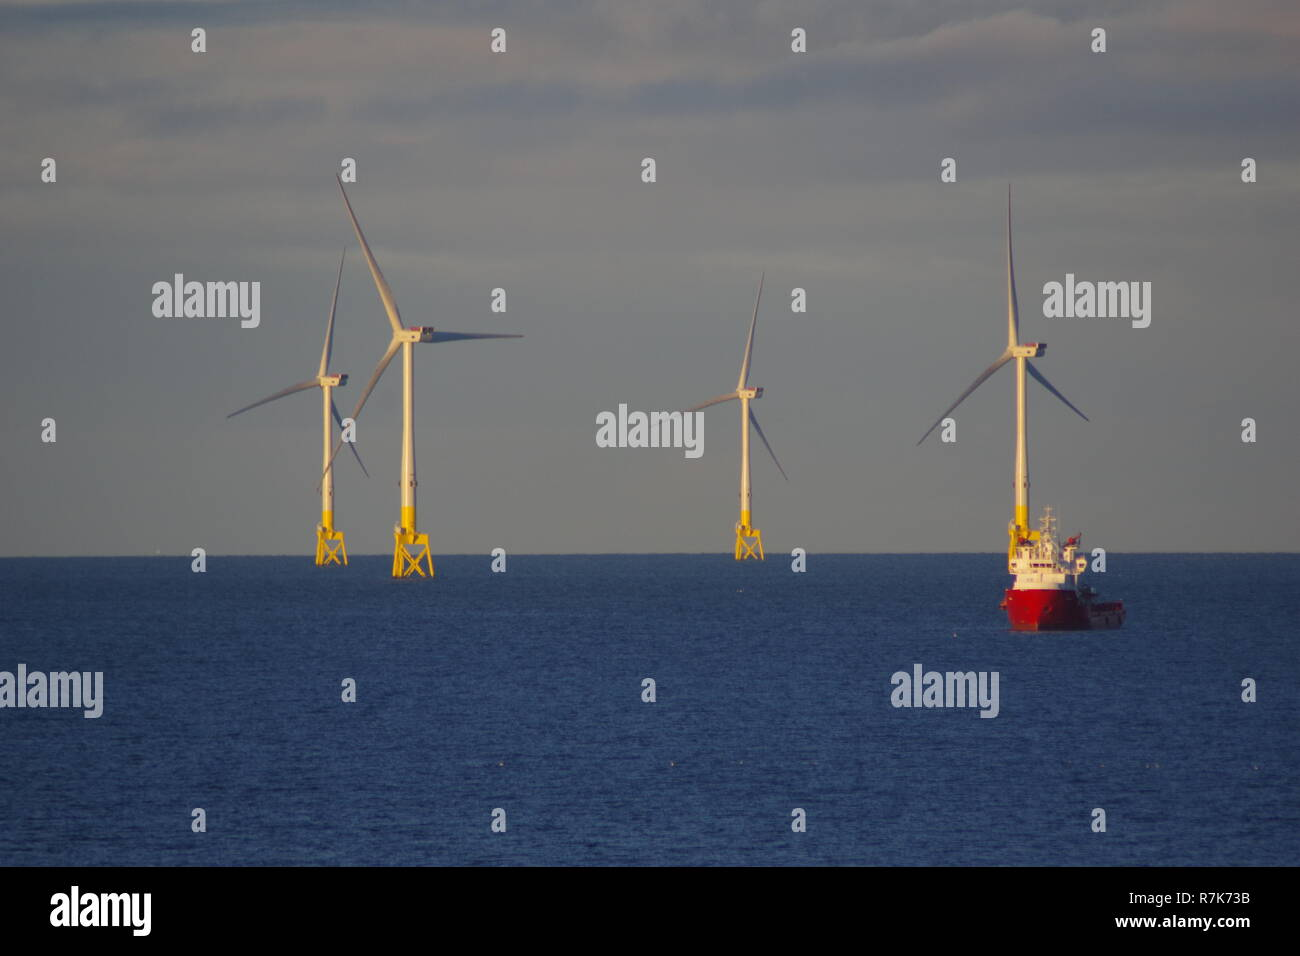 European Offshore Wind Deployment Centre. Renewable Energy Wind Farm, offshore Aberdeen in the Golden light of an Autumn Evening. Scotland, UK. - Stock Image